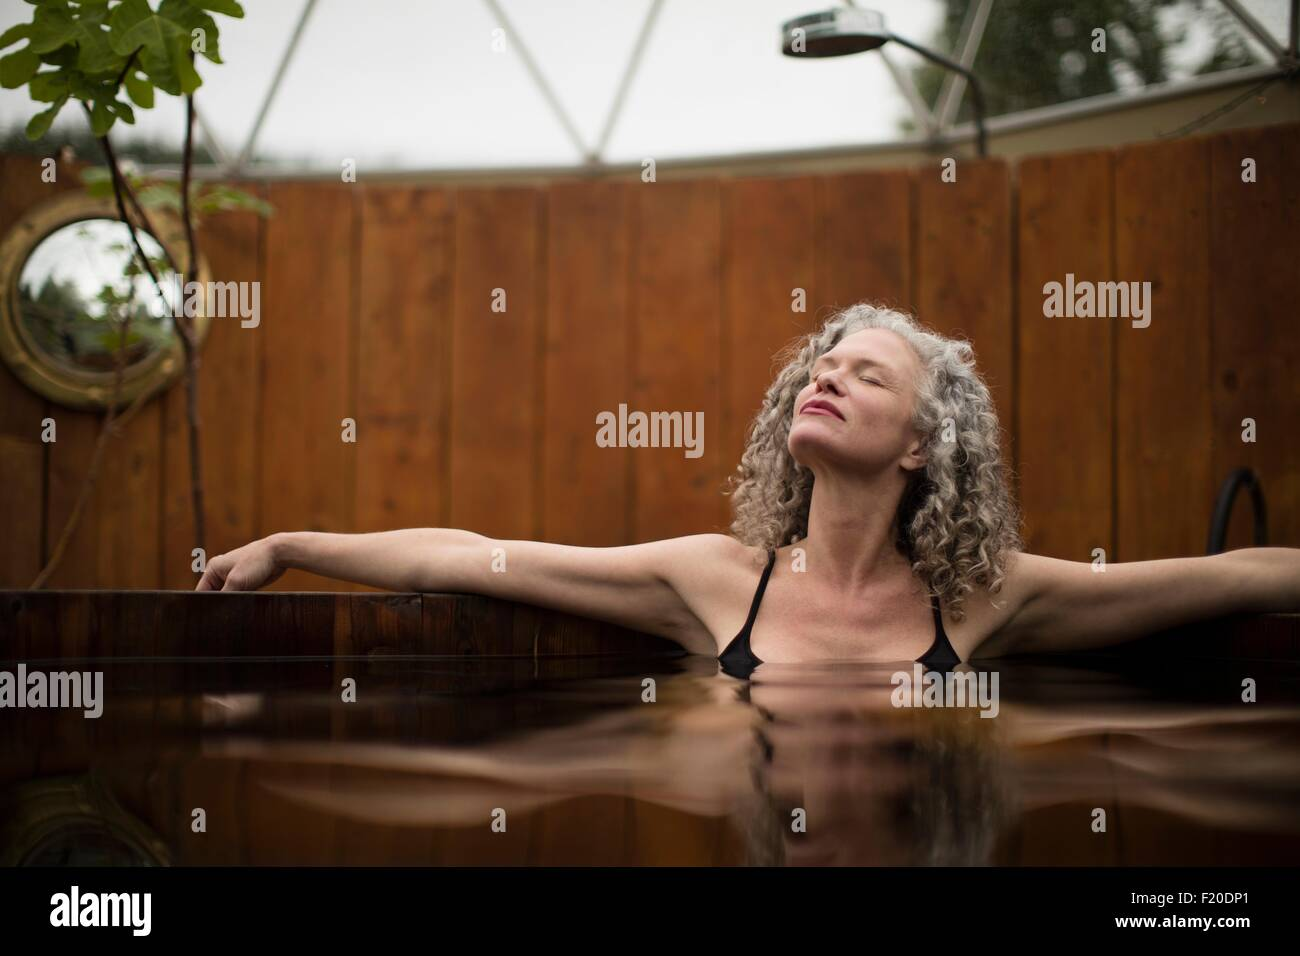 Sexy mature women hot tub